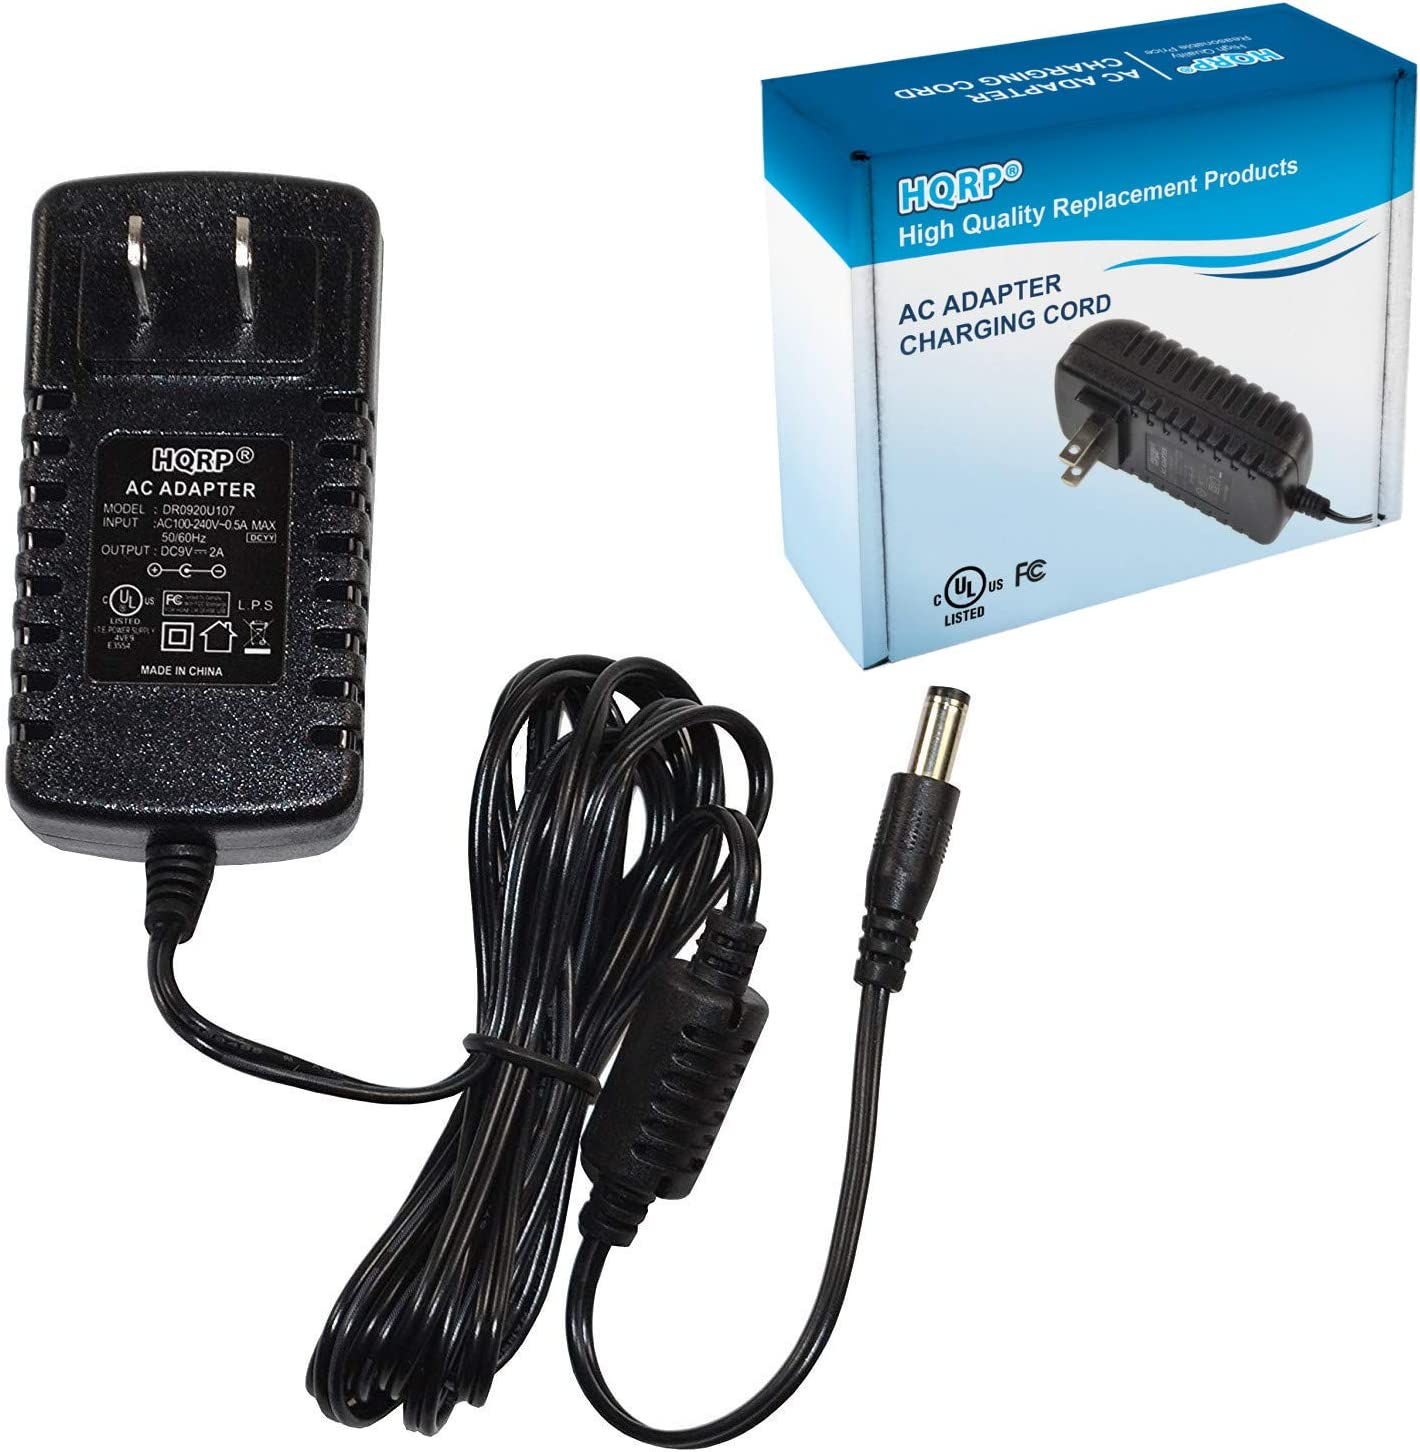 AC//DC Power Supply Adapter Cord For Roland EP-90 EP-707 Digital Piano Keyboard